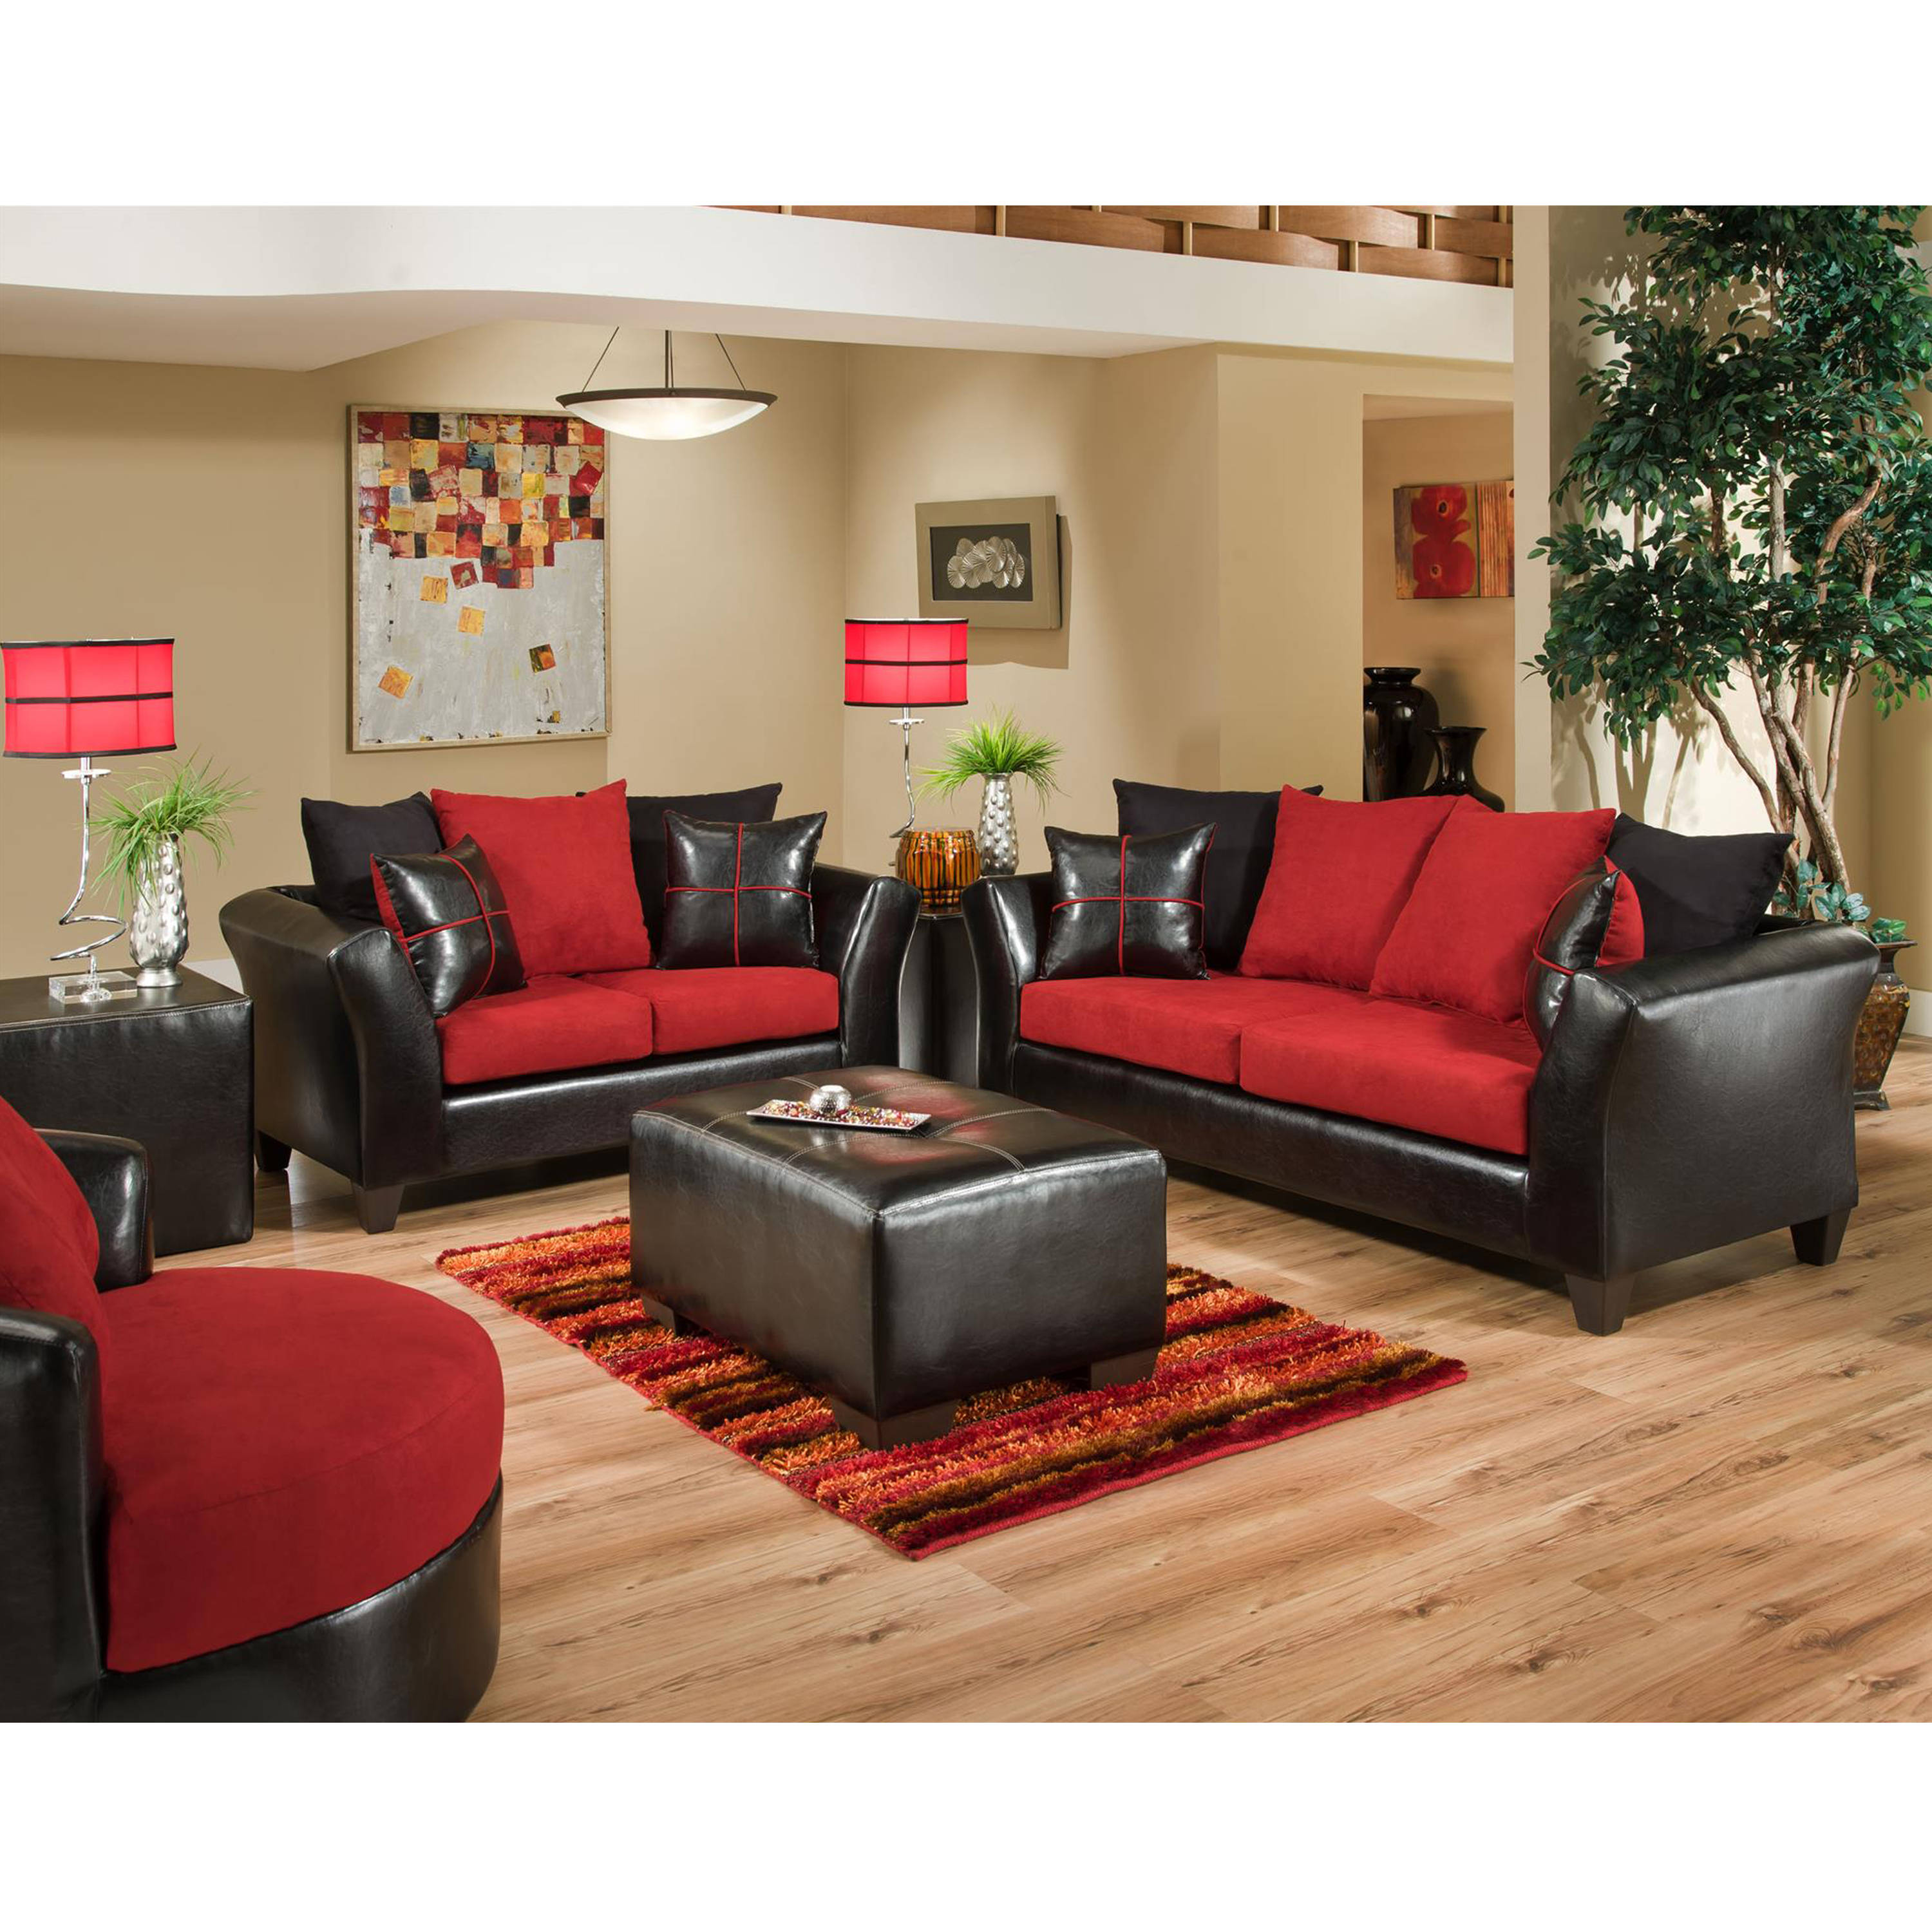 Flash Furniture Riverstone Red Black 2pc Living Room Set The with regard to 11 Genius Designs of How to Craft Red And Black Living Room Sets